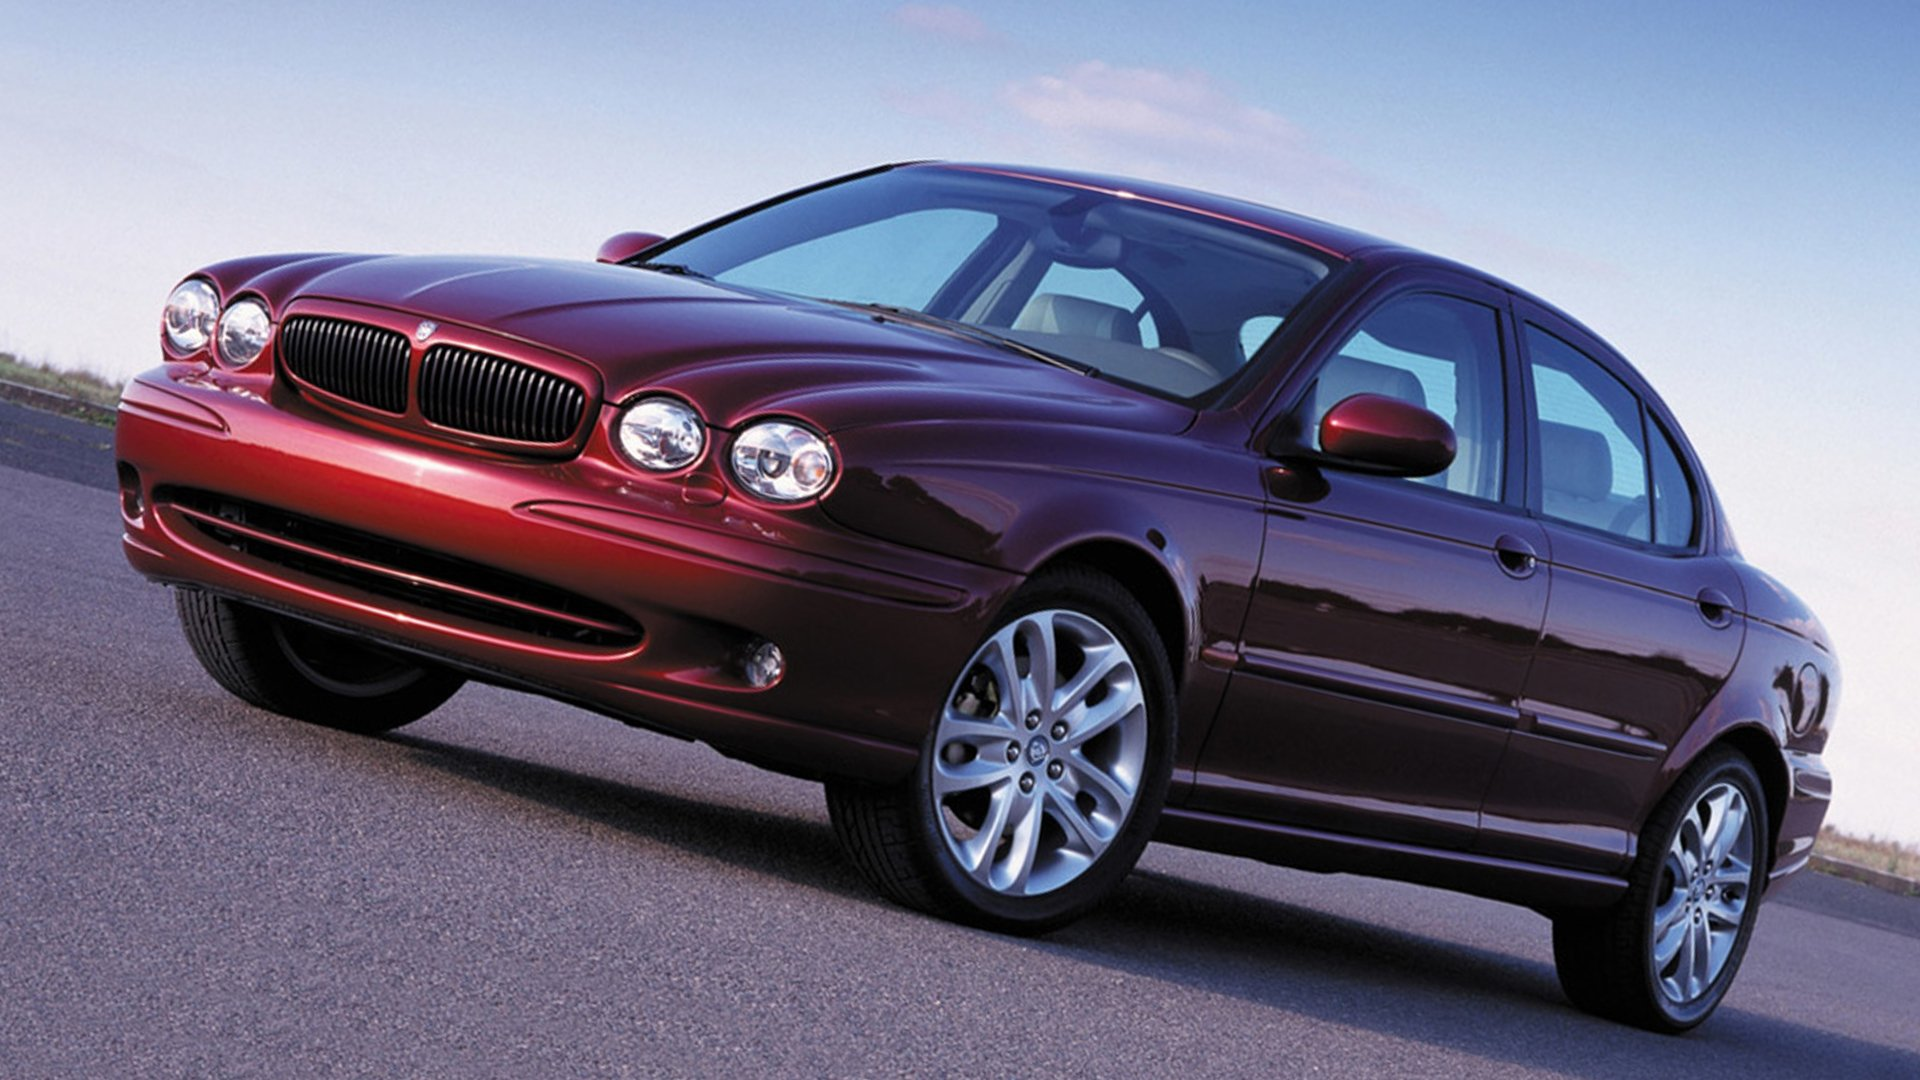 Jaguar X-Type Front View HD